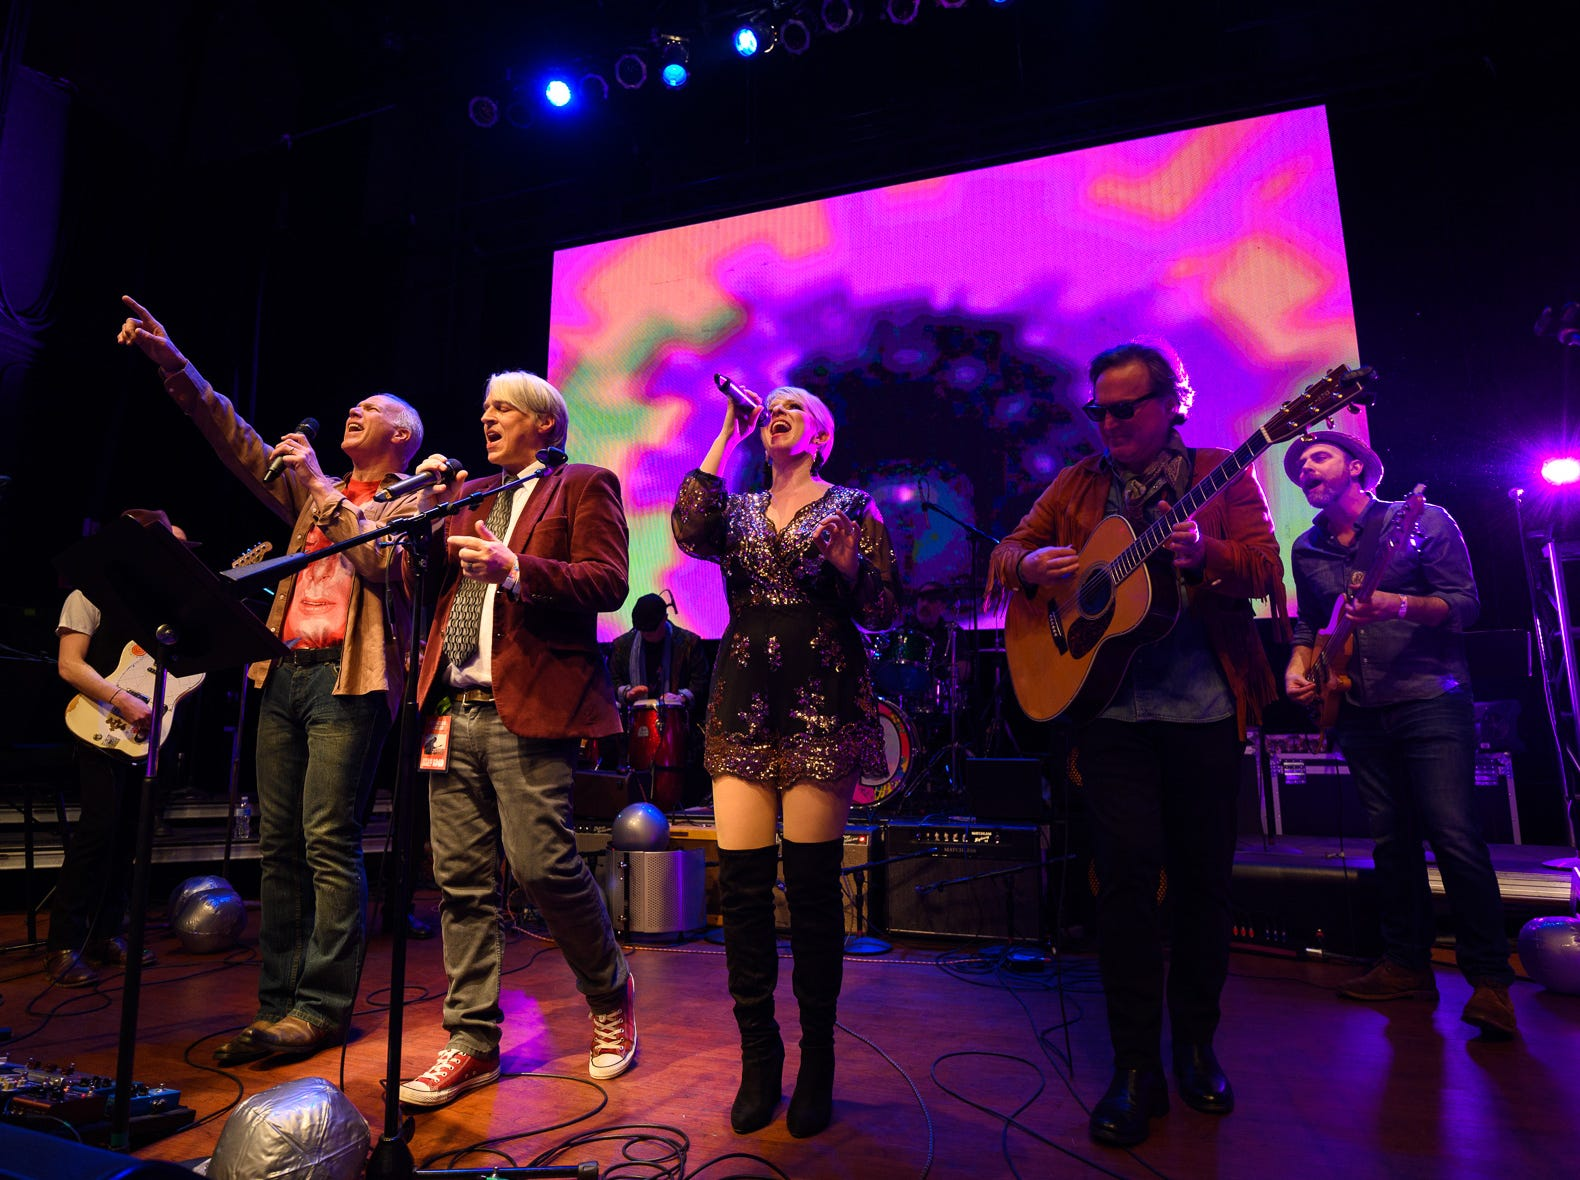 The annual Shine a Light concert was held March 2 at The Queen befitting the Light Up the Queen Foundation and music education programs. More than 60 local musicians played the songs of 1969 to a sold out crowd.